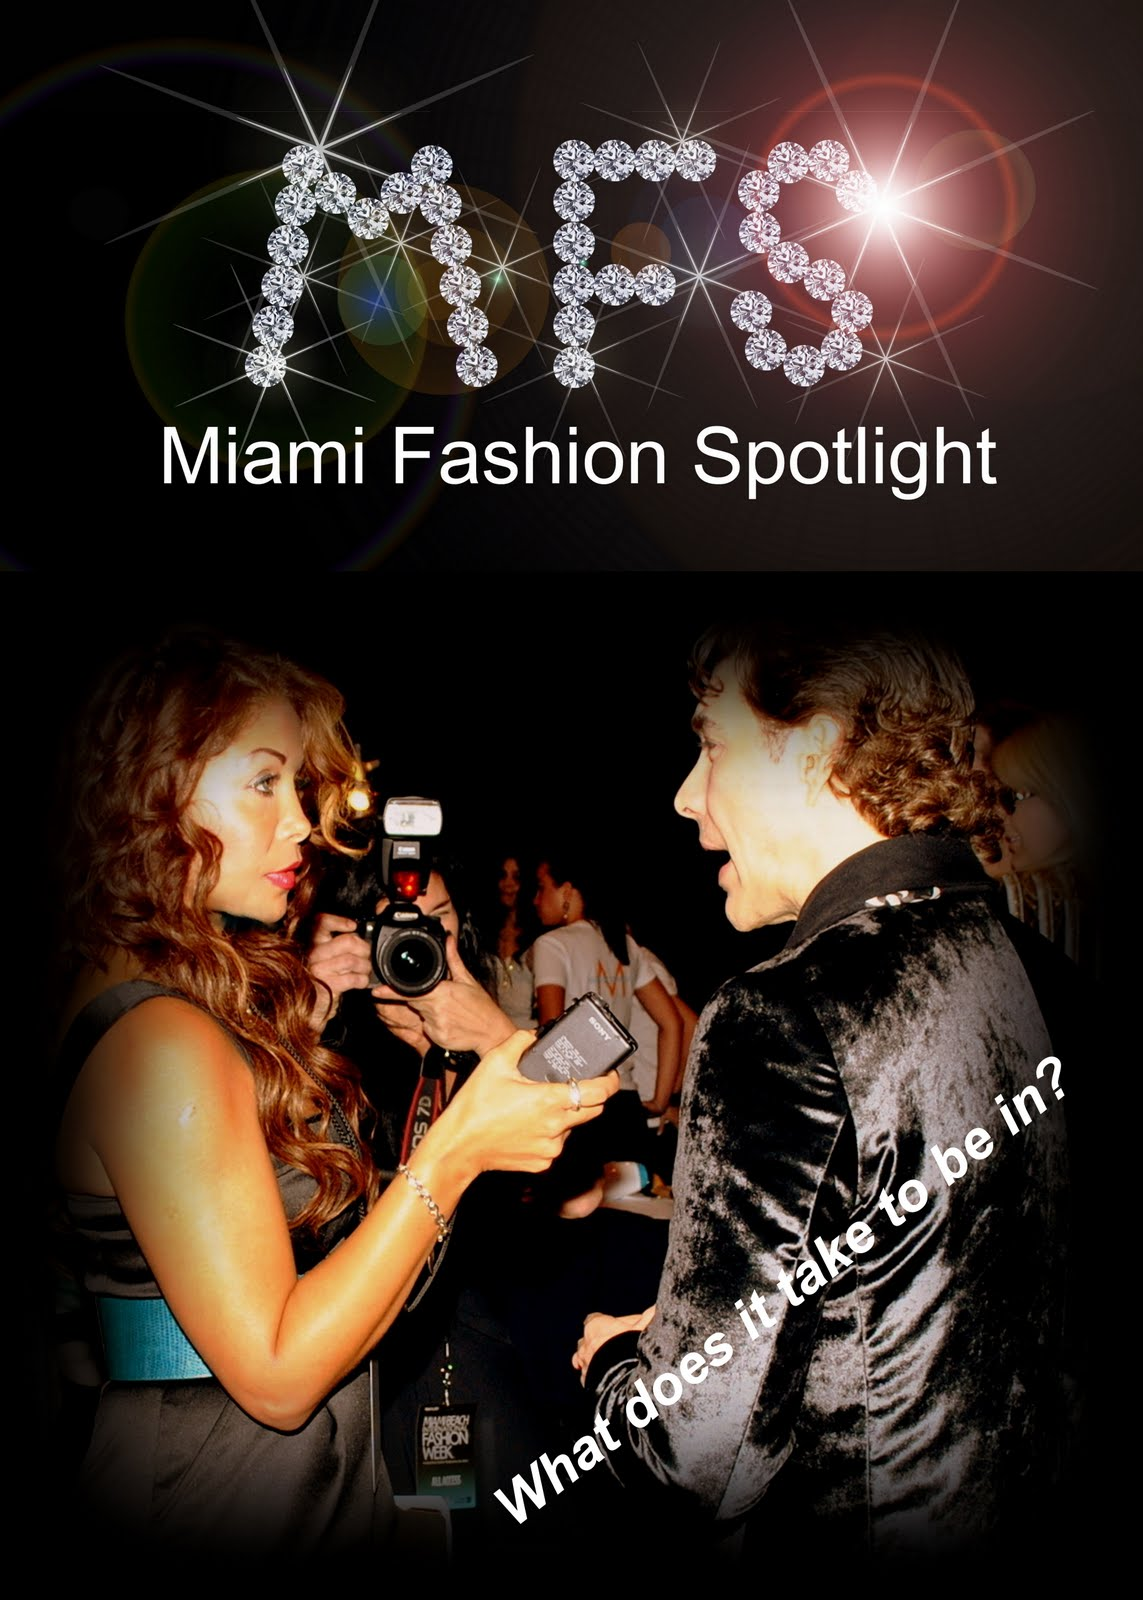 Visita nuestro blog en ingles: Miami Fashion Spotlight